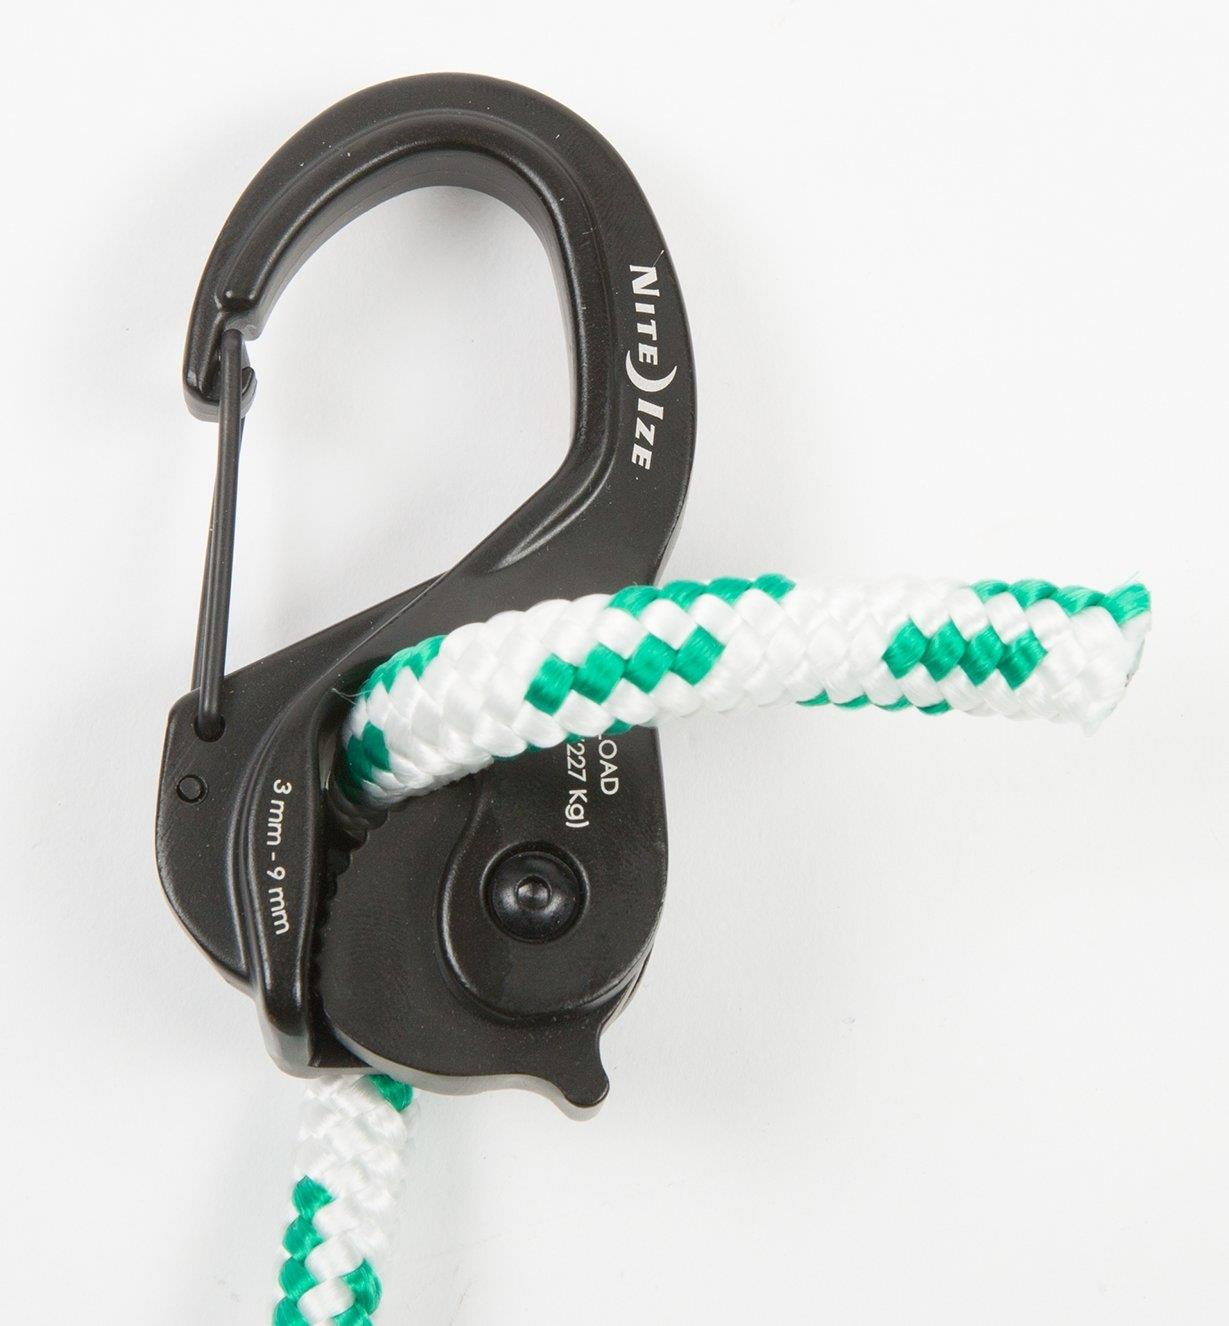 68K0666 - CamJam XT Rope Tightener